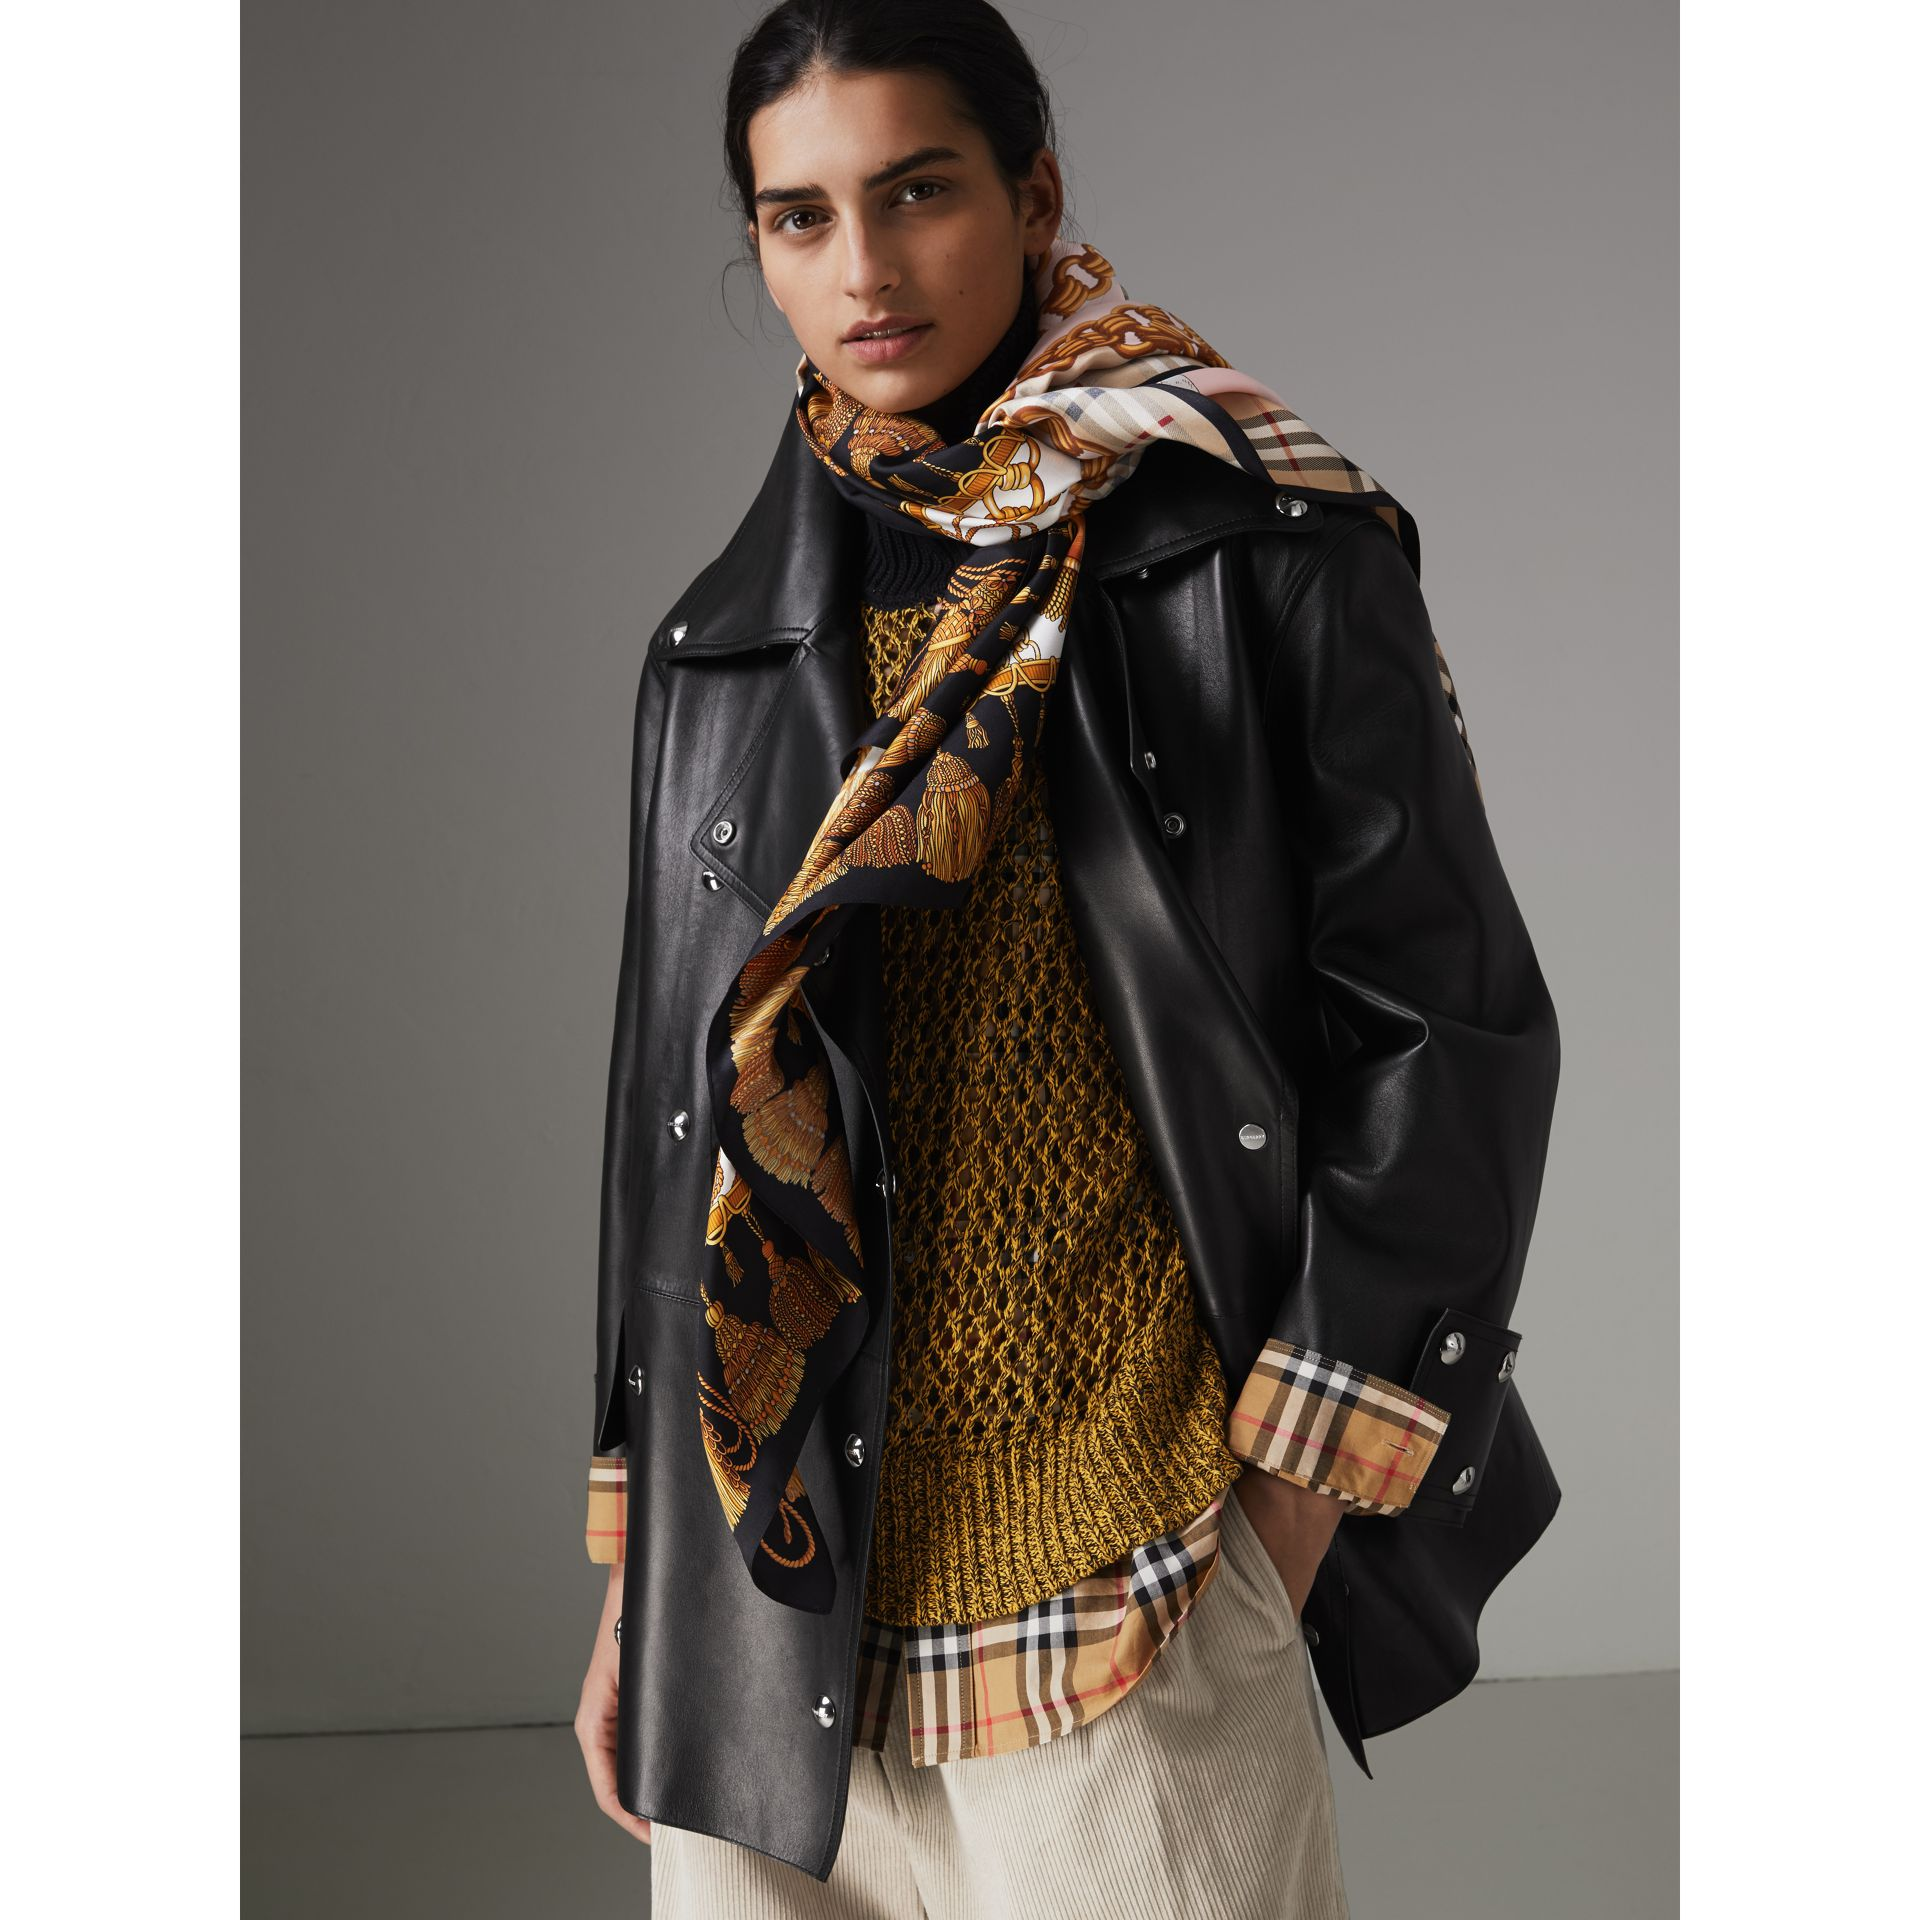 Archive Scarf Print Silk Scarf in Gold | Burberry - gallery image 6